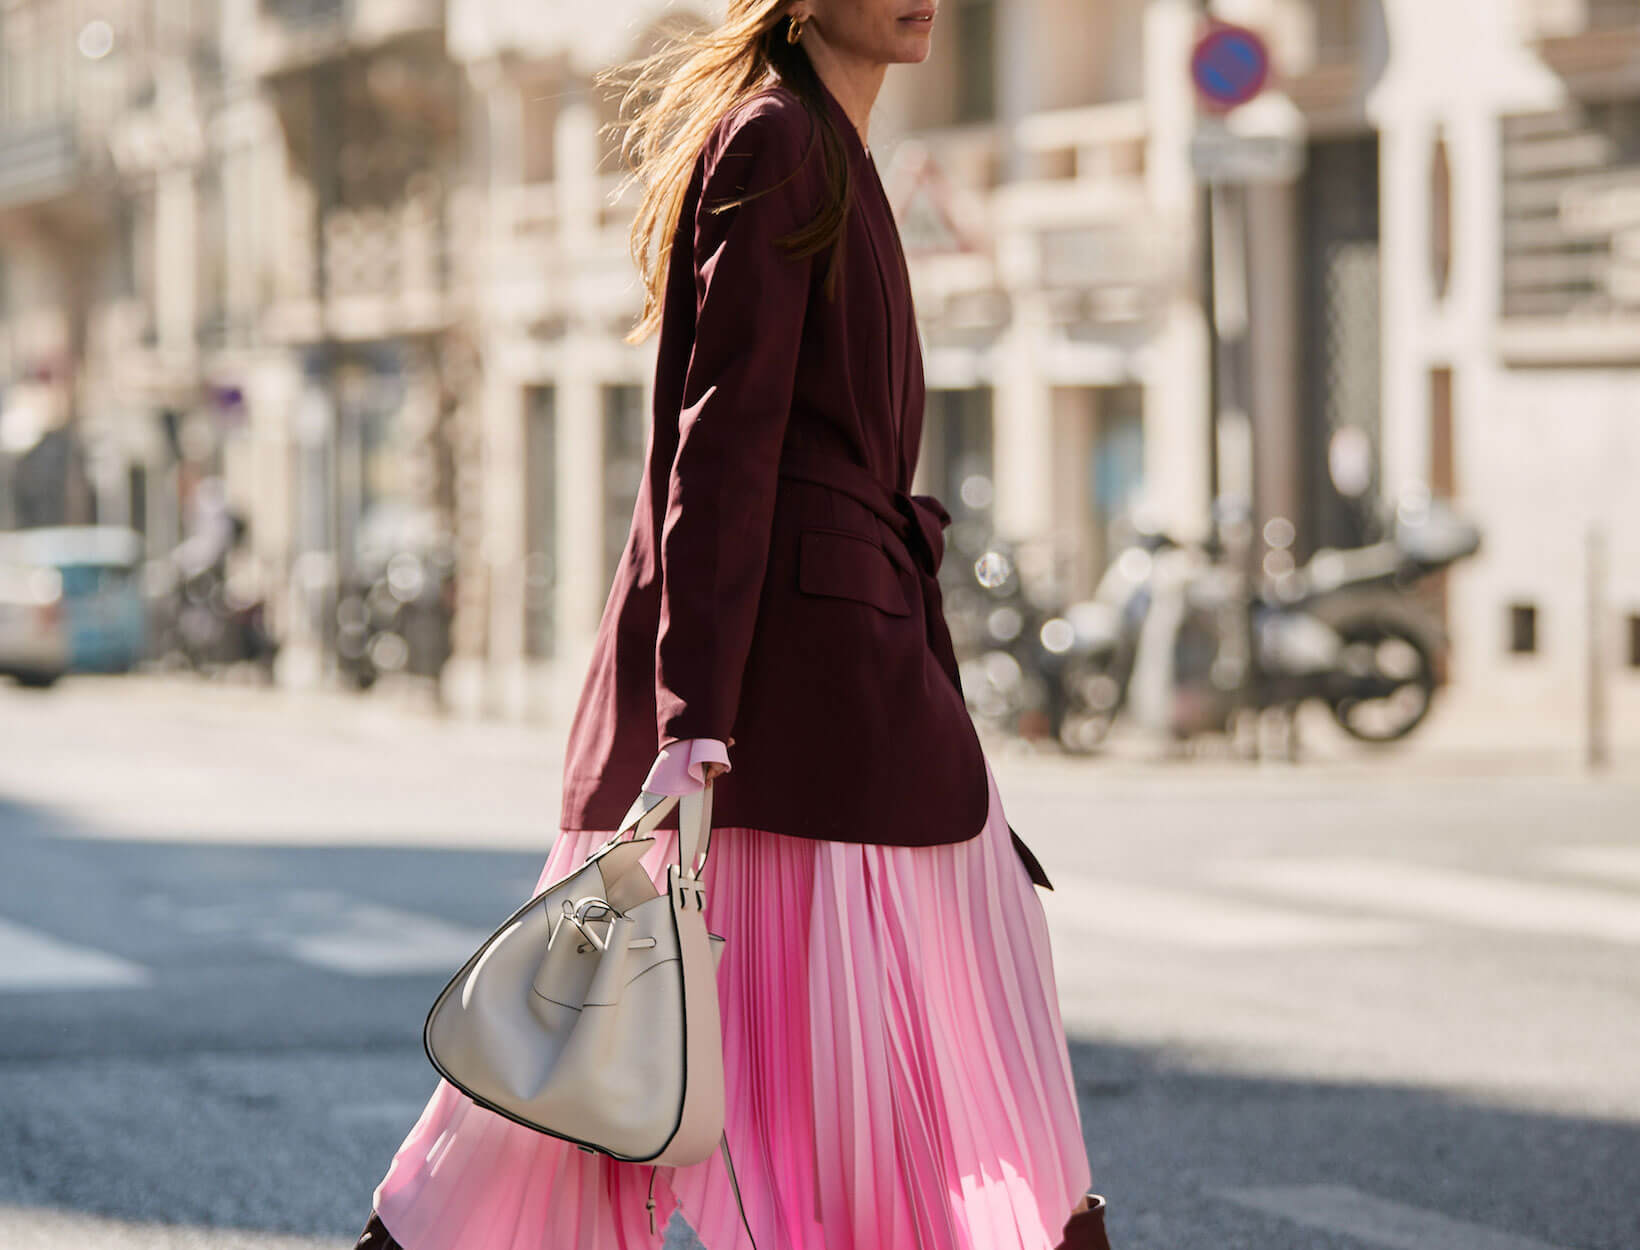 3 Unexpected Takes on Color Blocking for Spring